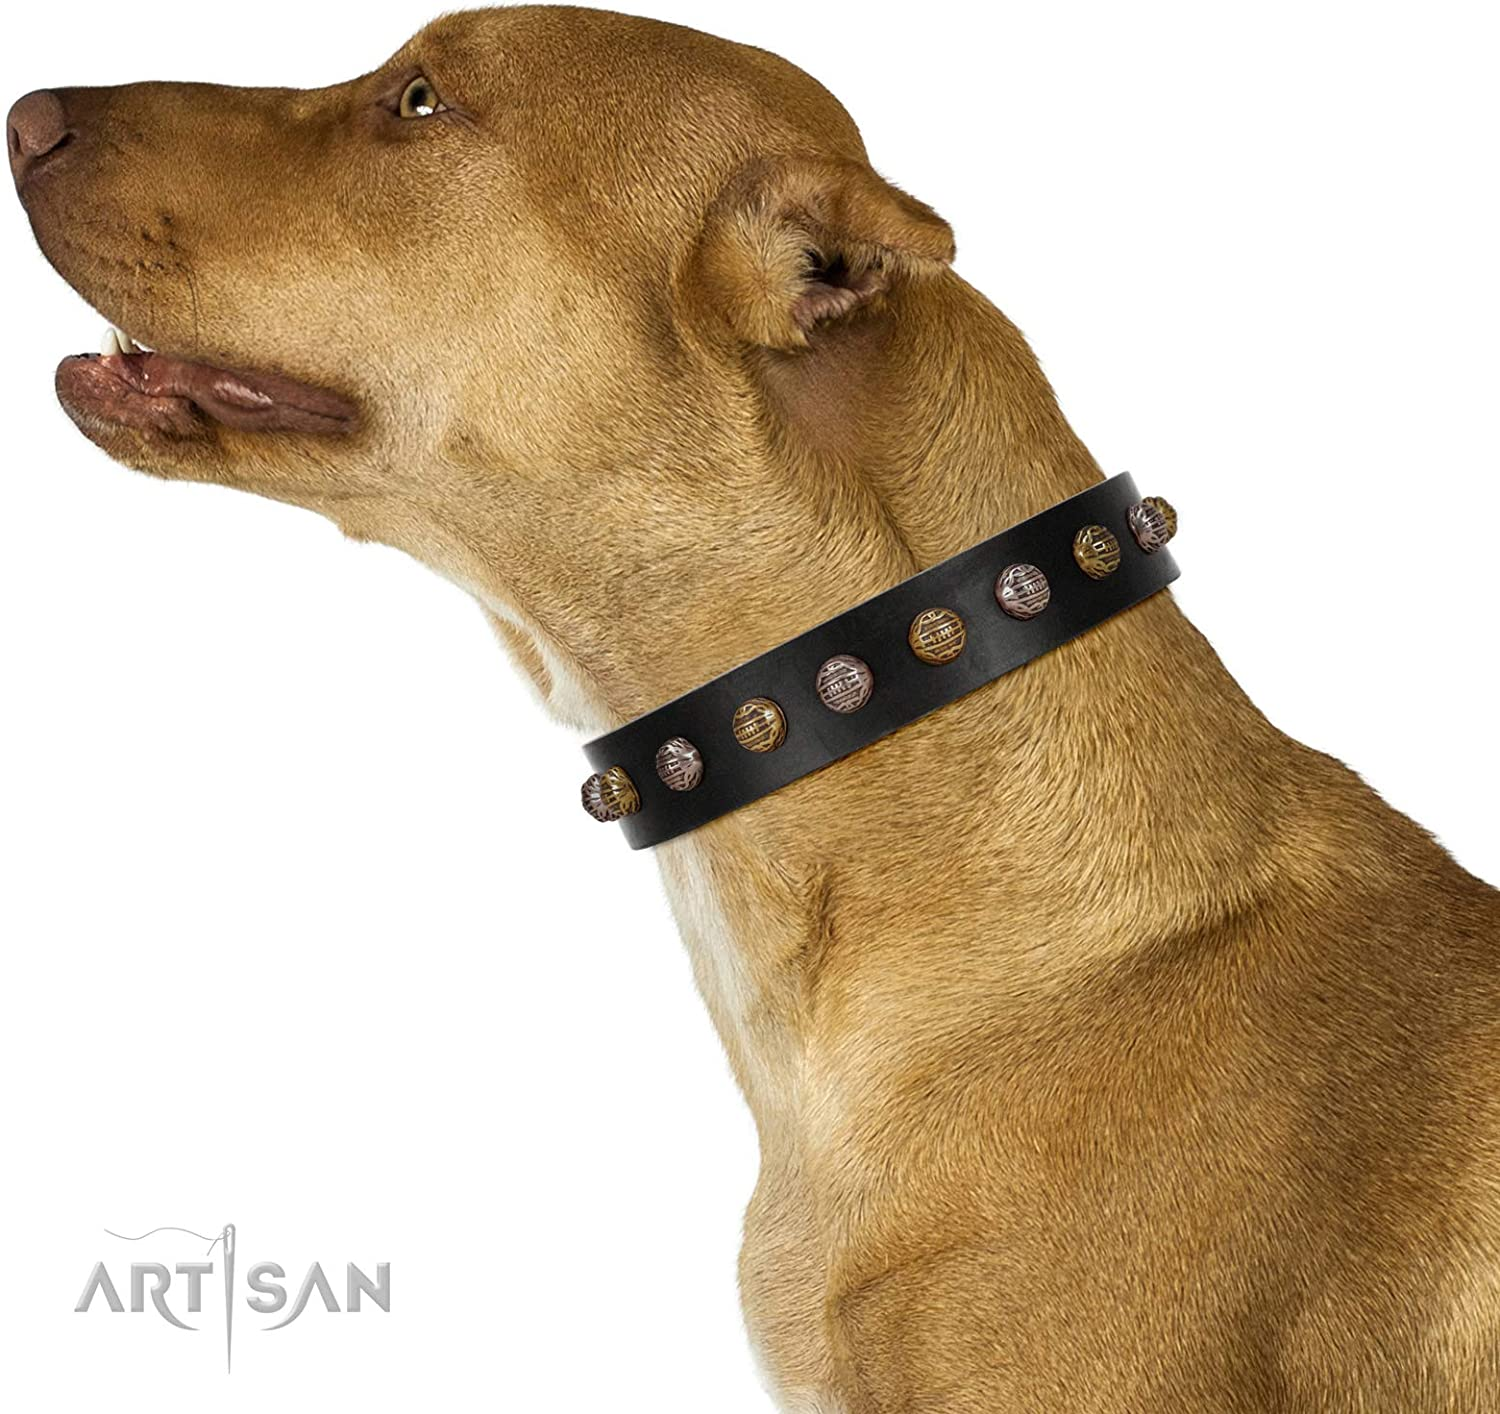 FDT Artisan 16 inch Inky Prettification Black Leather Dog Collar with Studs in Gift Packaging  1 1 2 inch (40 mm)